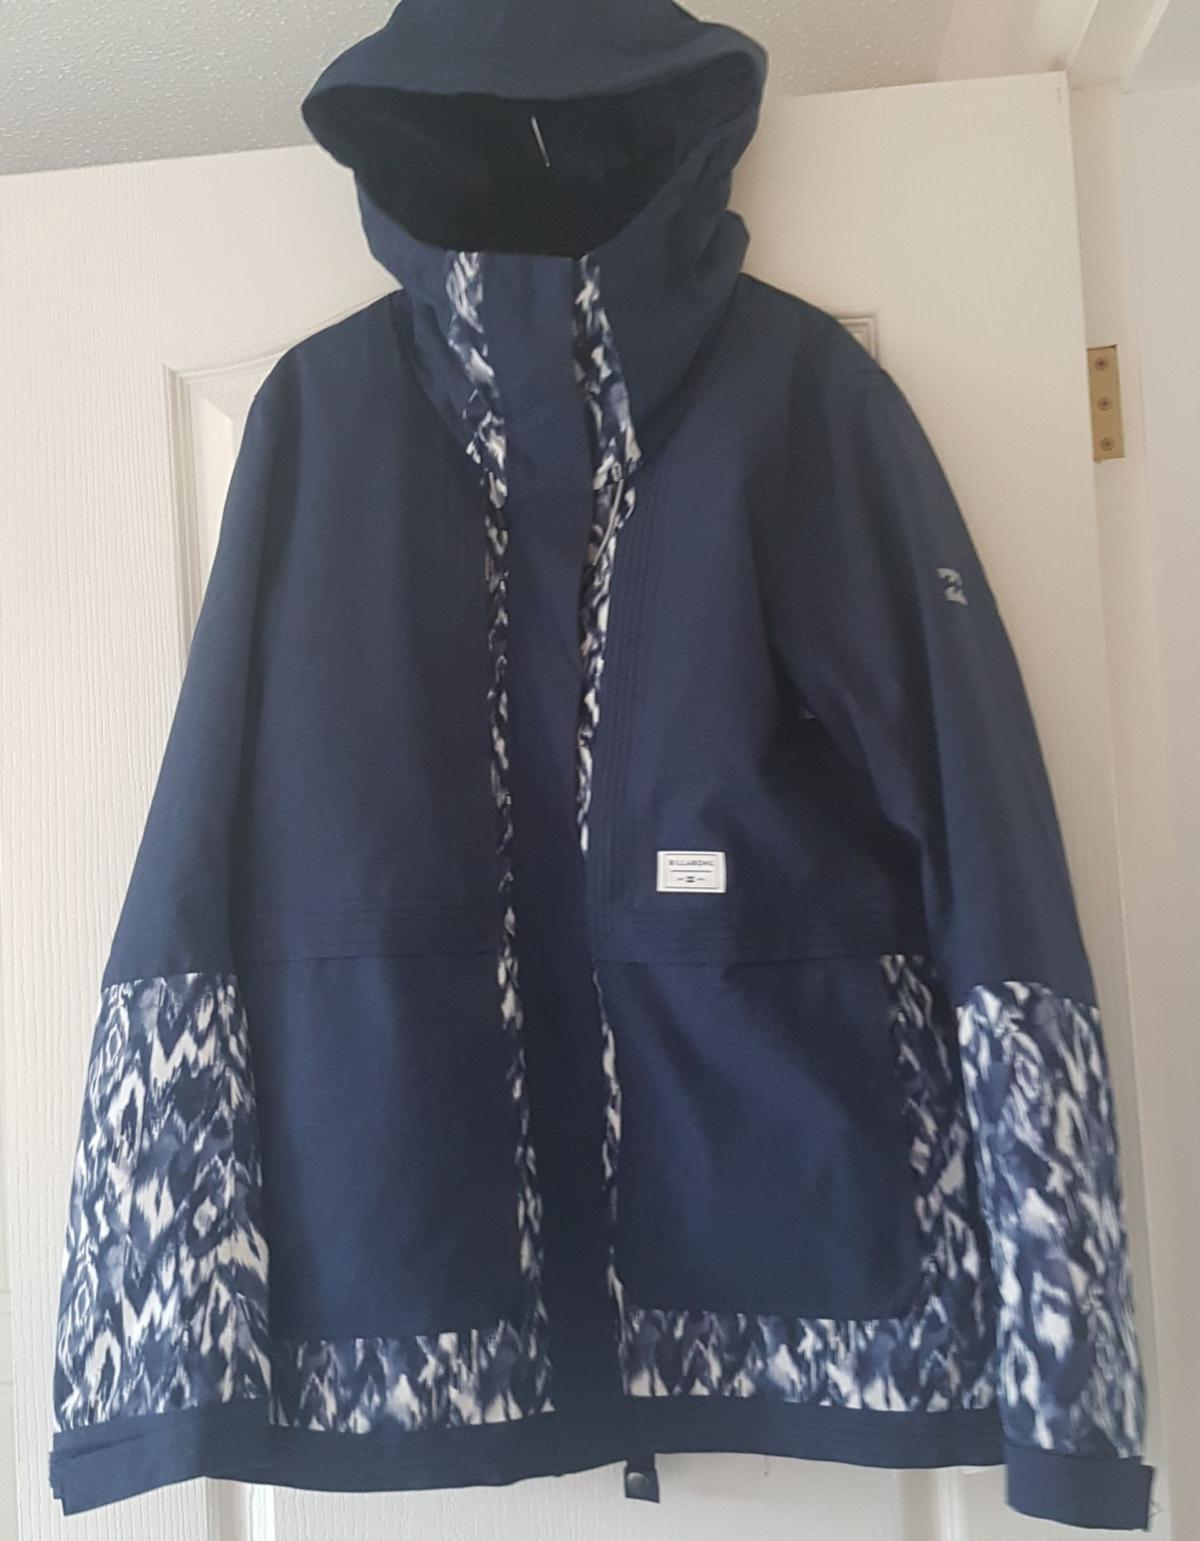 billabong ladies ski jacket . high tog for minimum weight but maximum warmth. Worn once. perfect condition